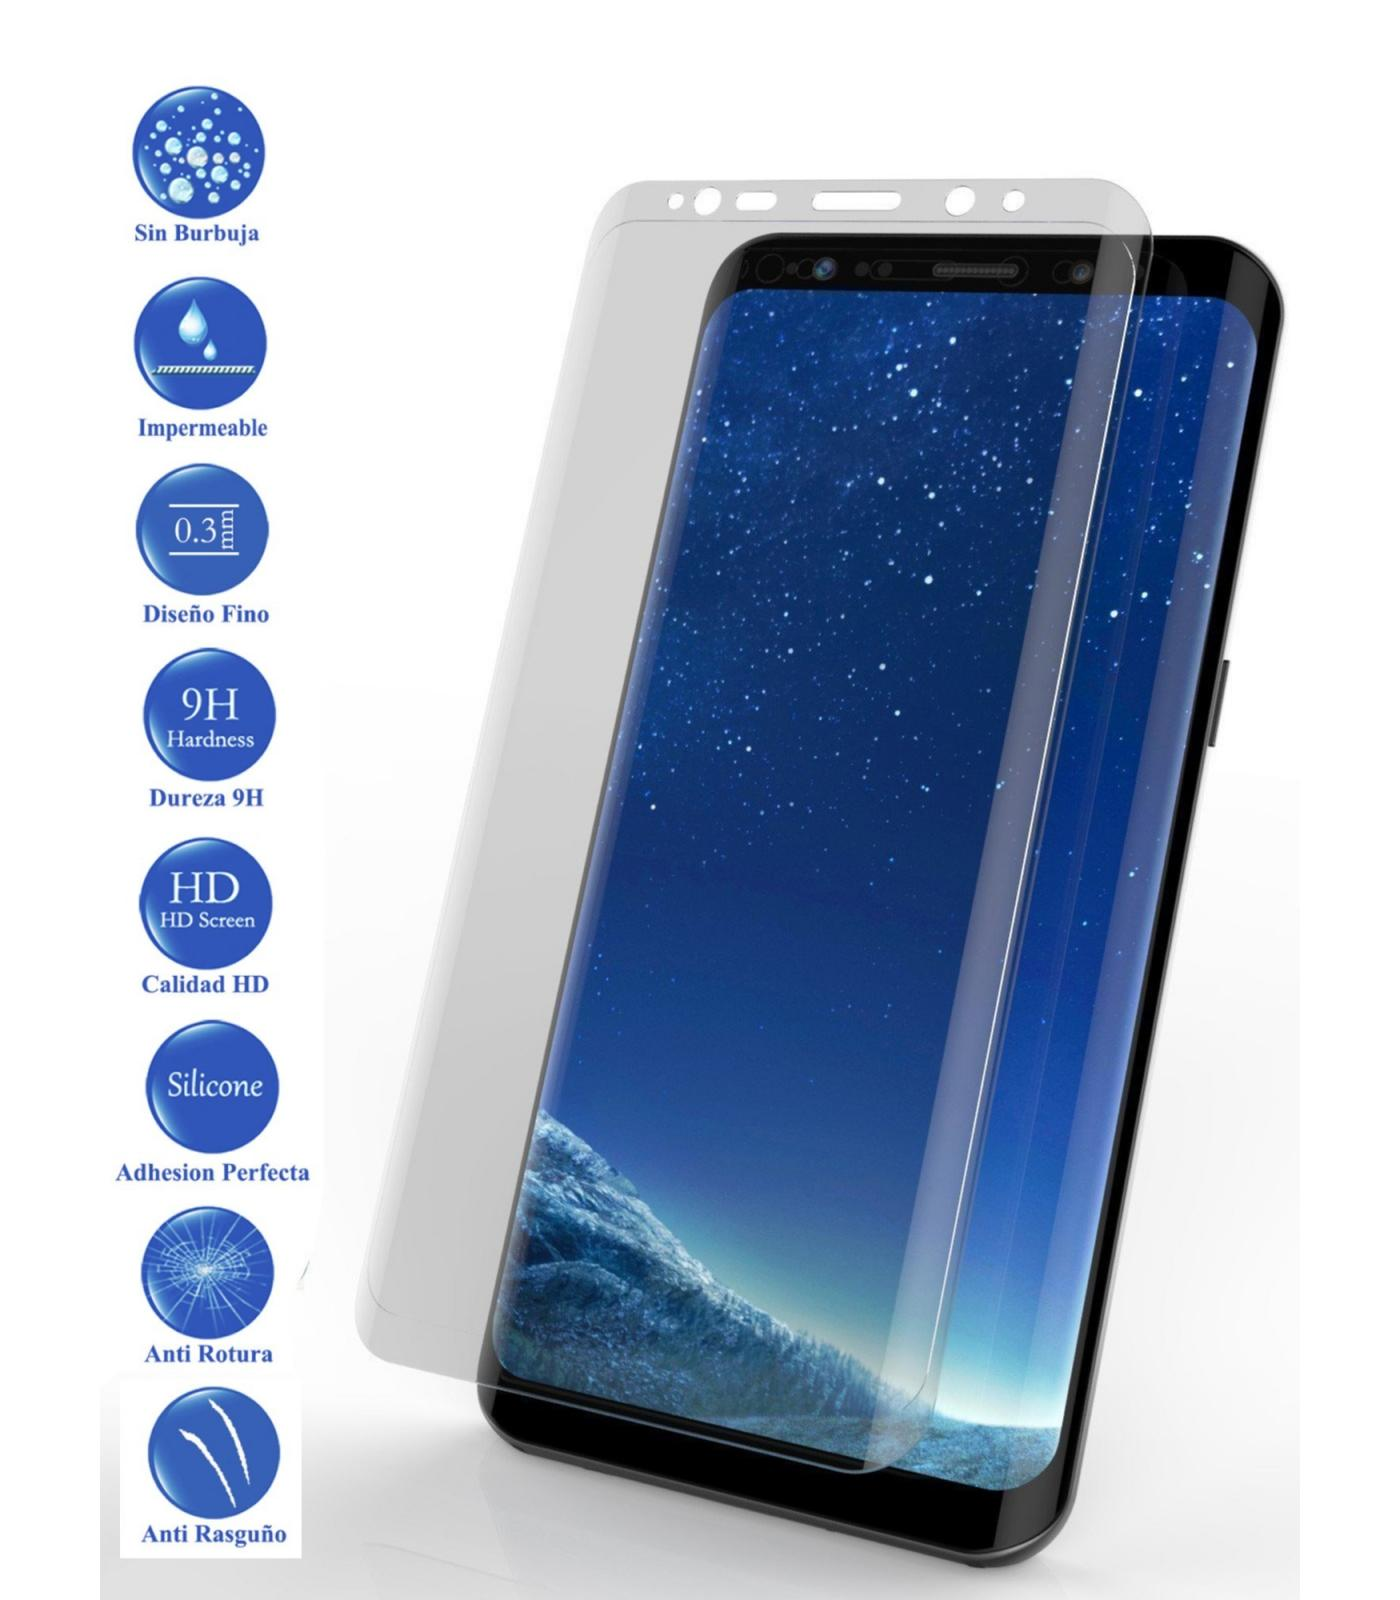 LCD cover screen <font><b>protector</b></font> Full Tempered Glass <font><b>Samsung</b></font> Galaxy <font><b>S9</b></font> Plus Clear image